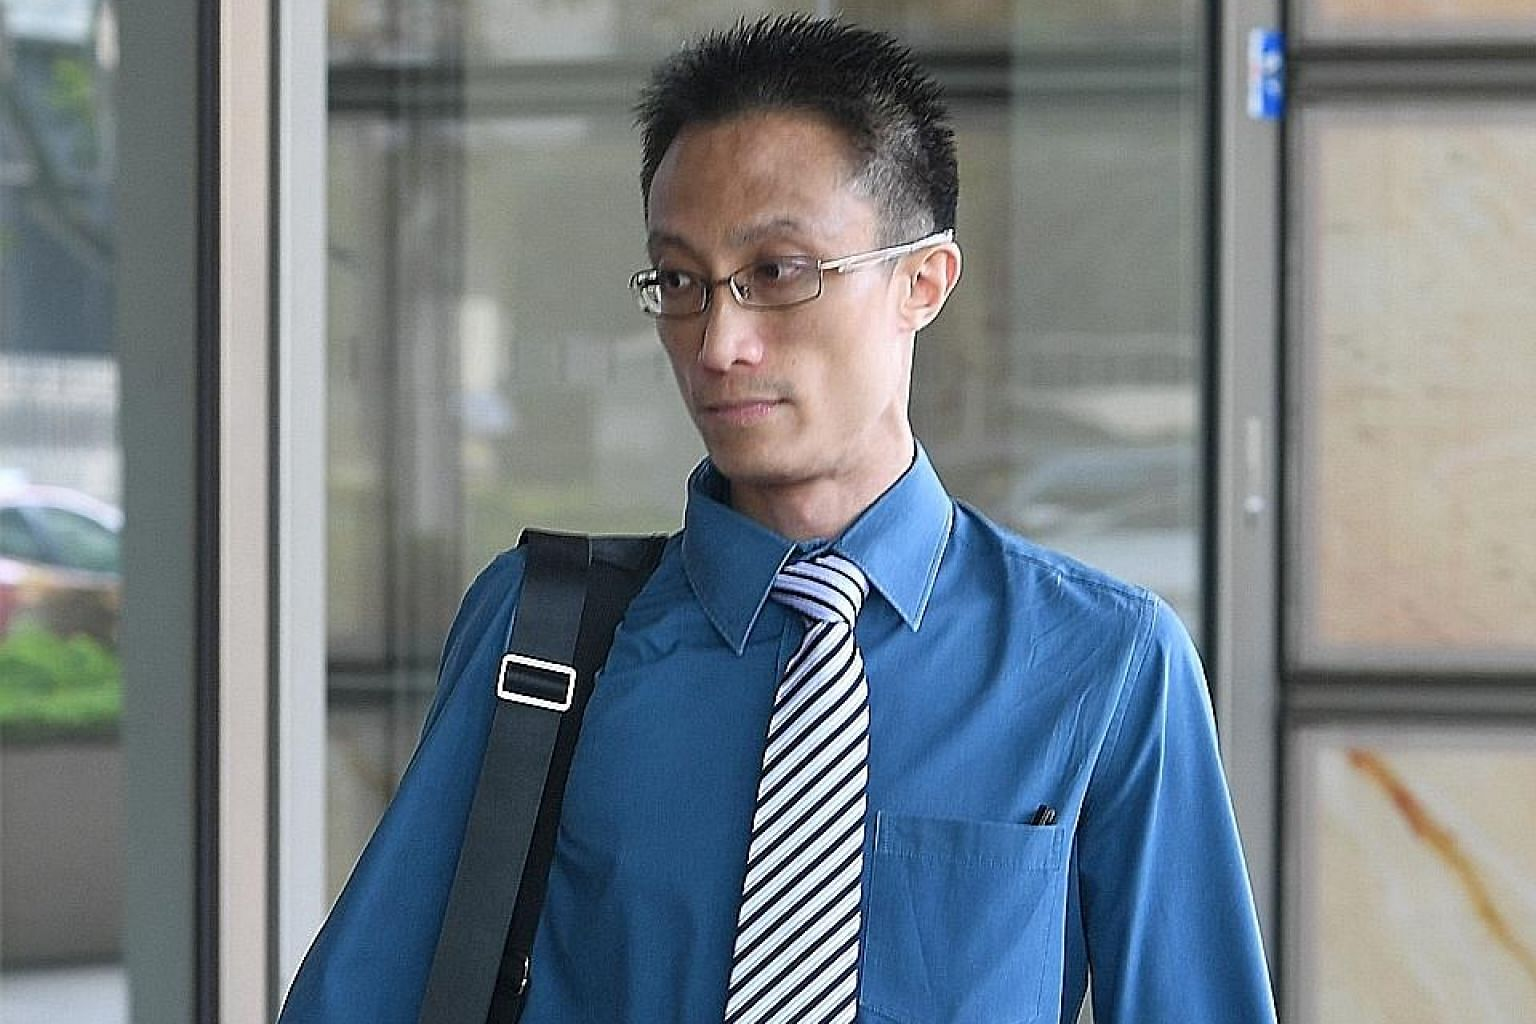 Ler Teck Siang, 38, was yesterday sentenced to 15 months in jail on two drug offence charges.